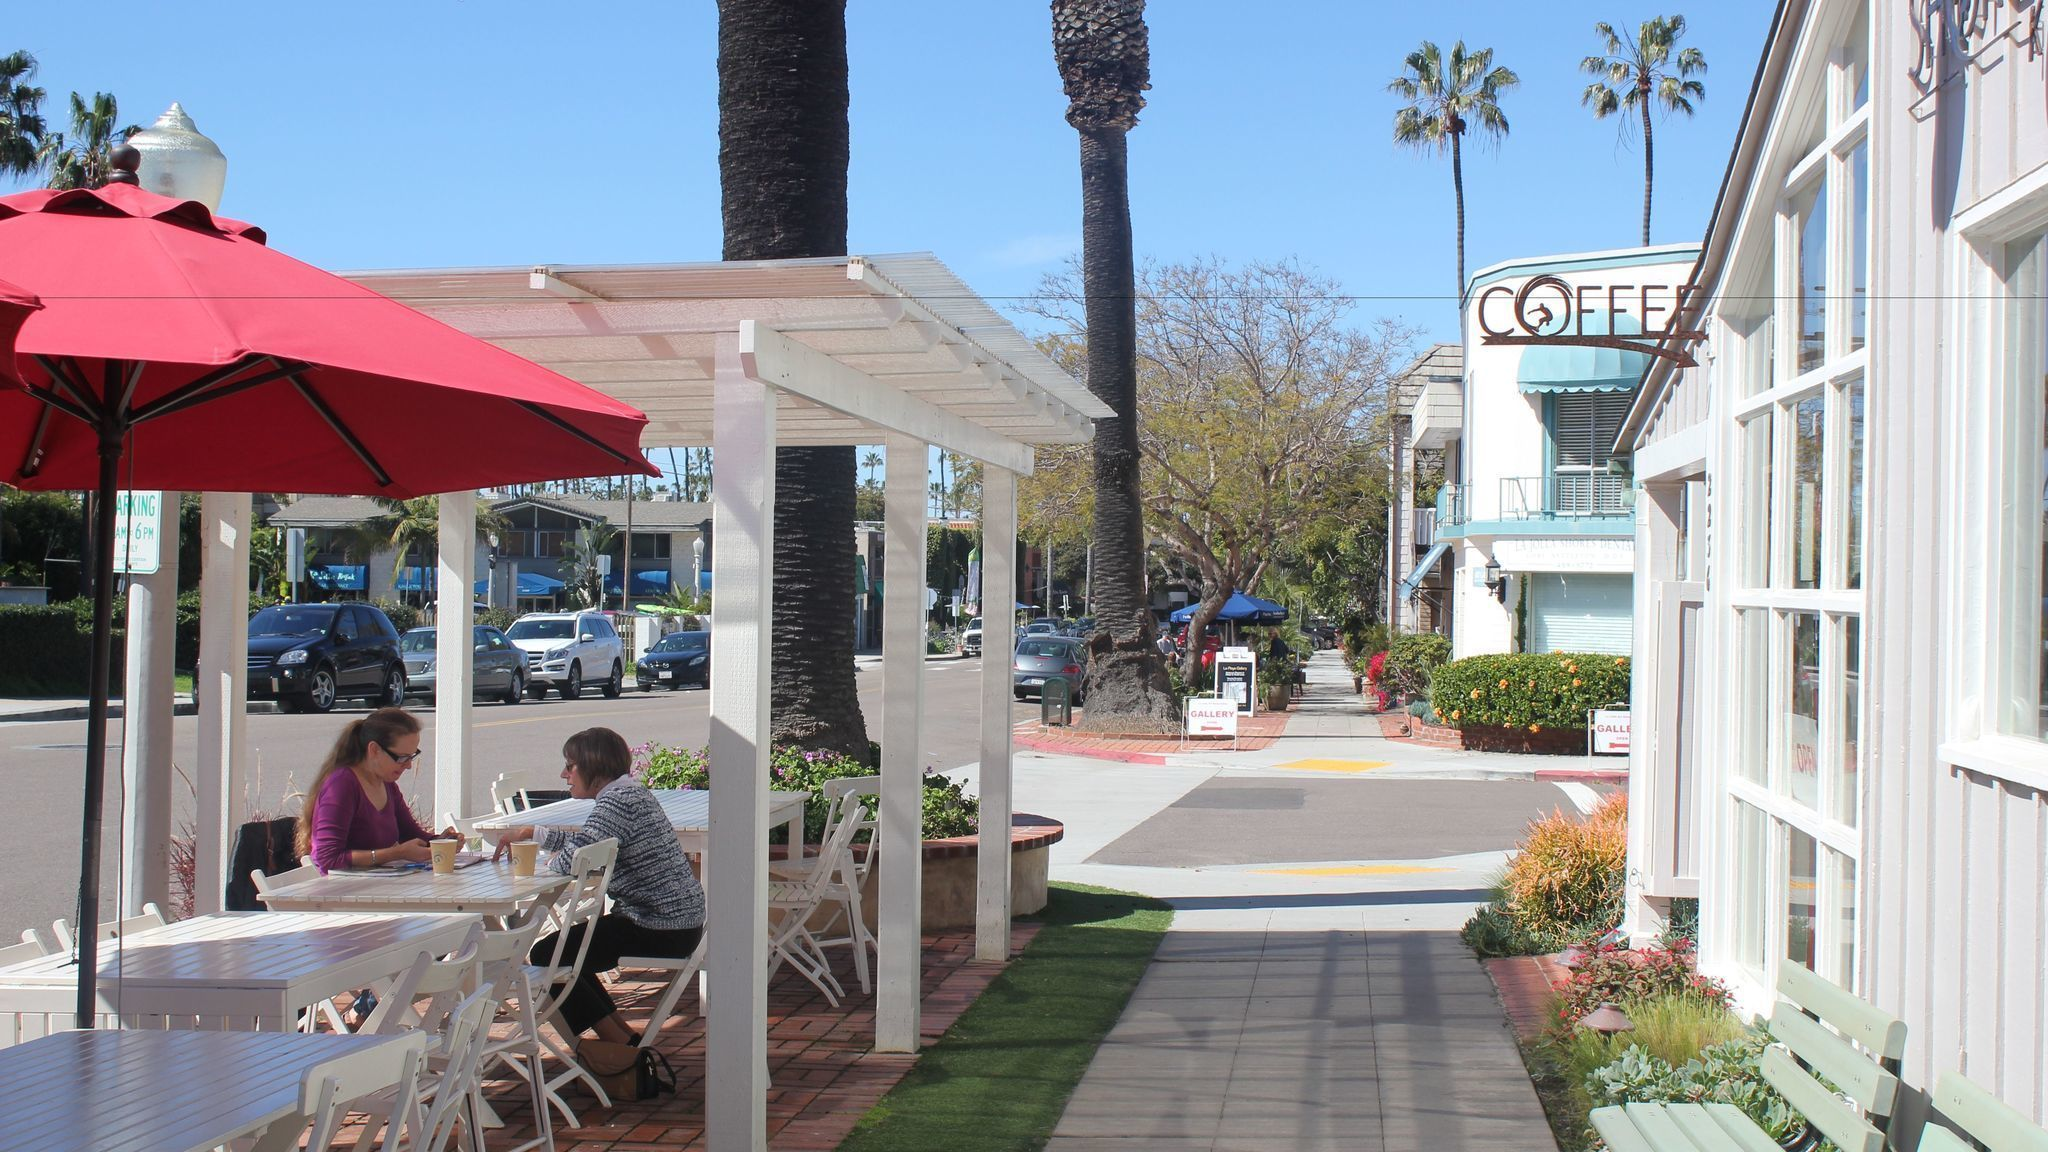 Shade structure gets La Jolla Shores café owners in trouble with ...